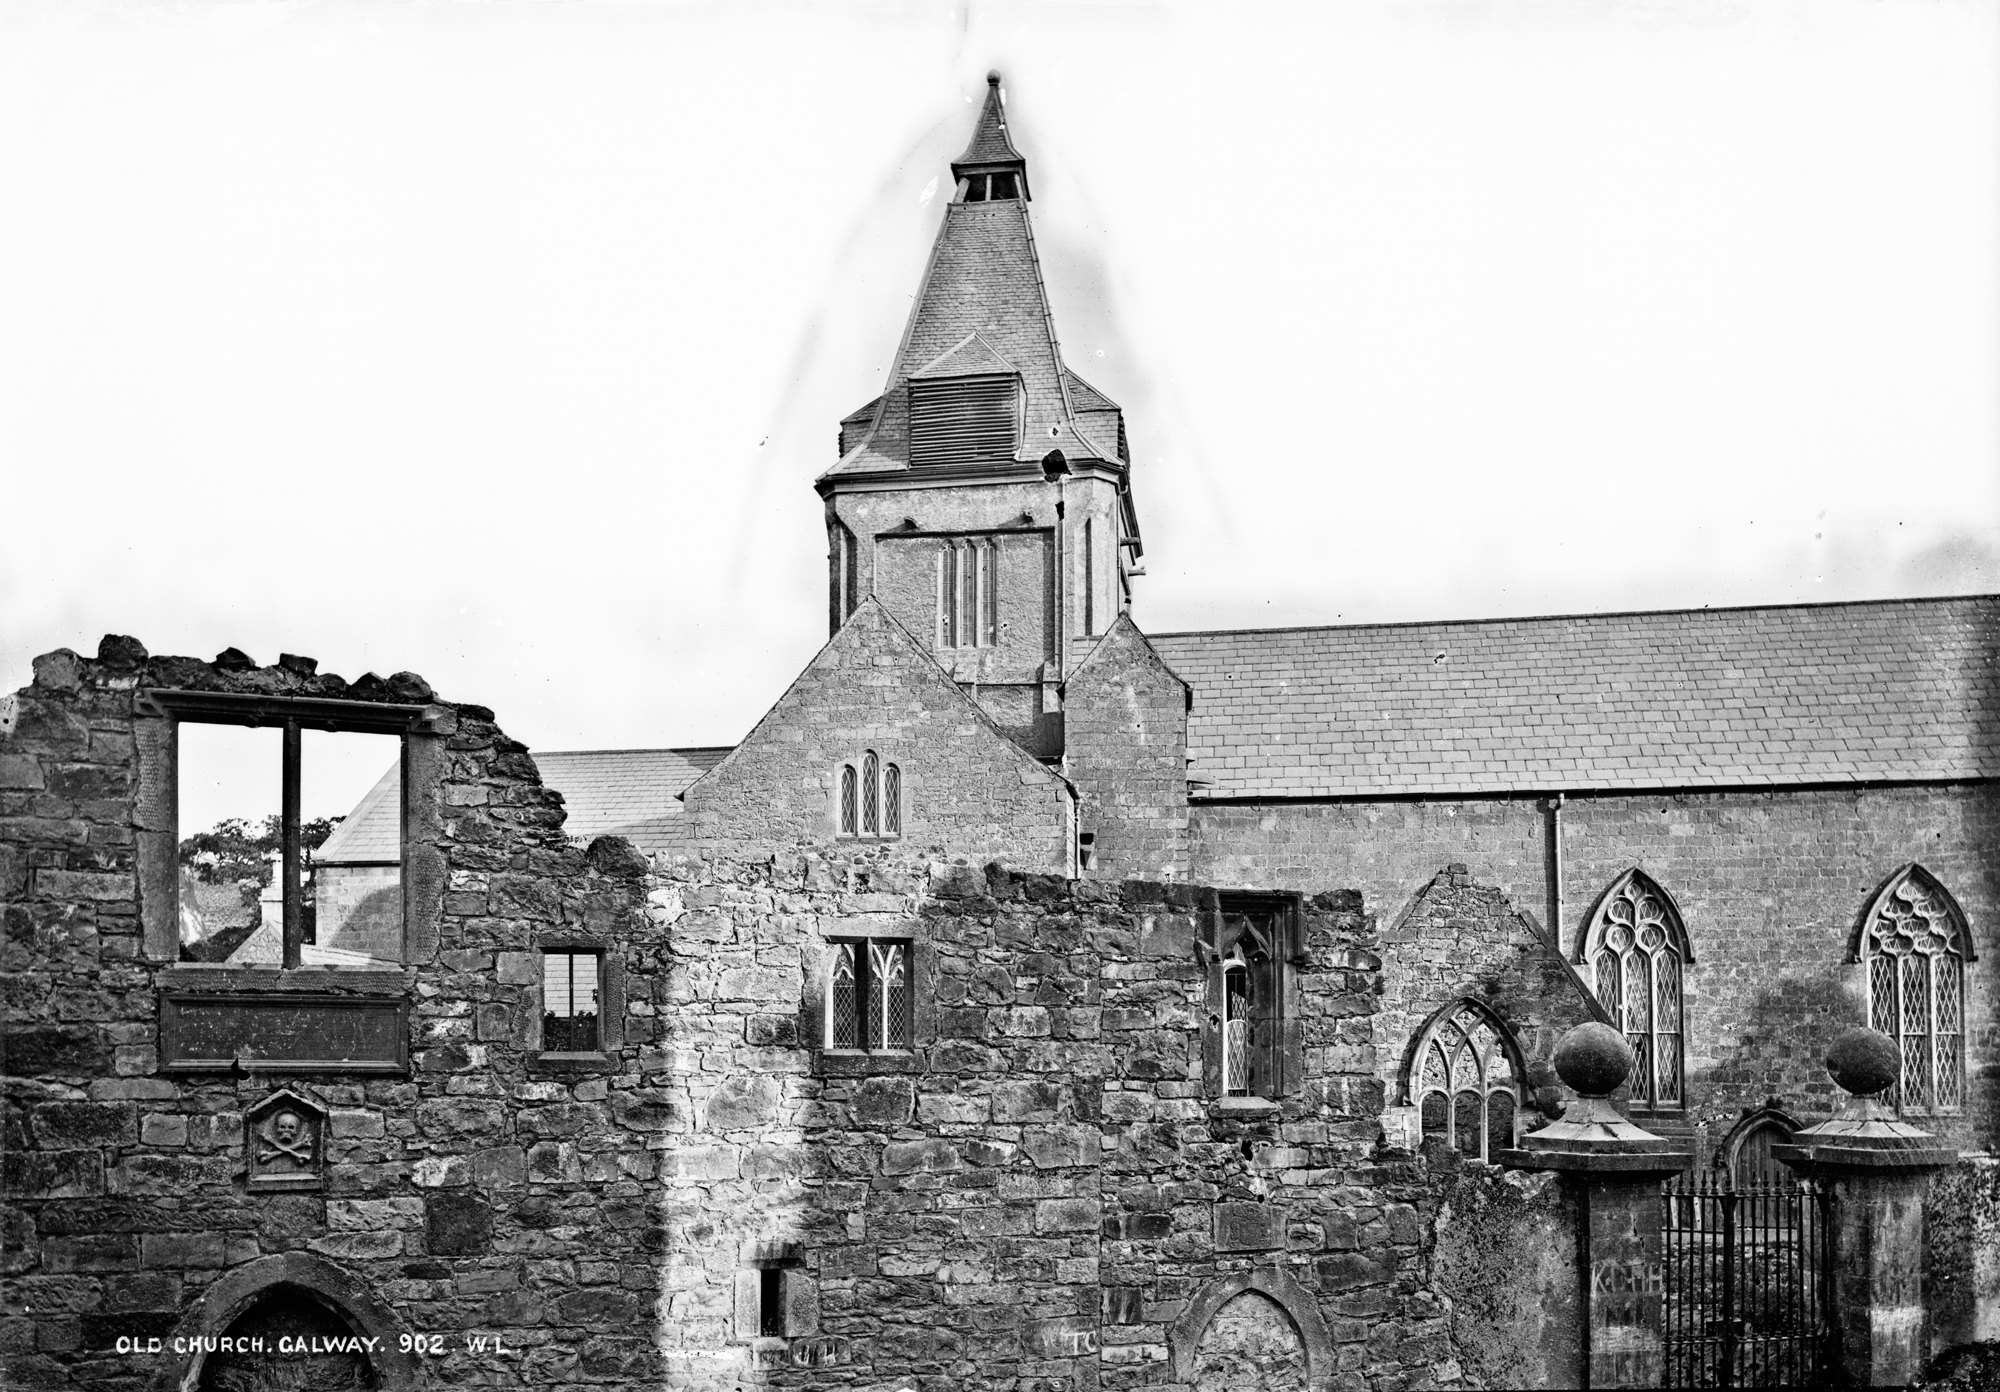 Old Church, Co. Galway?